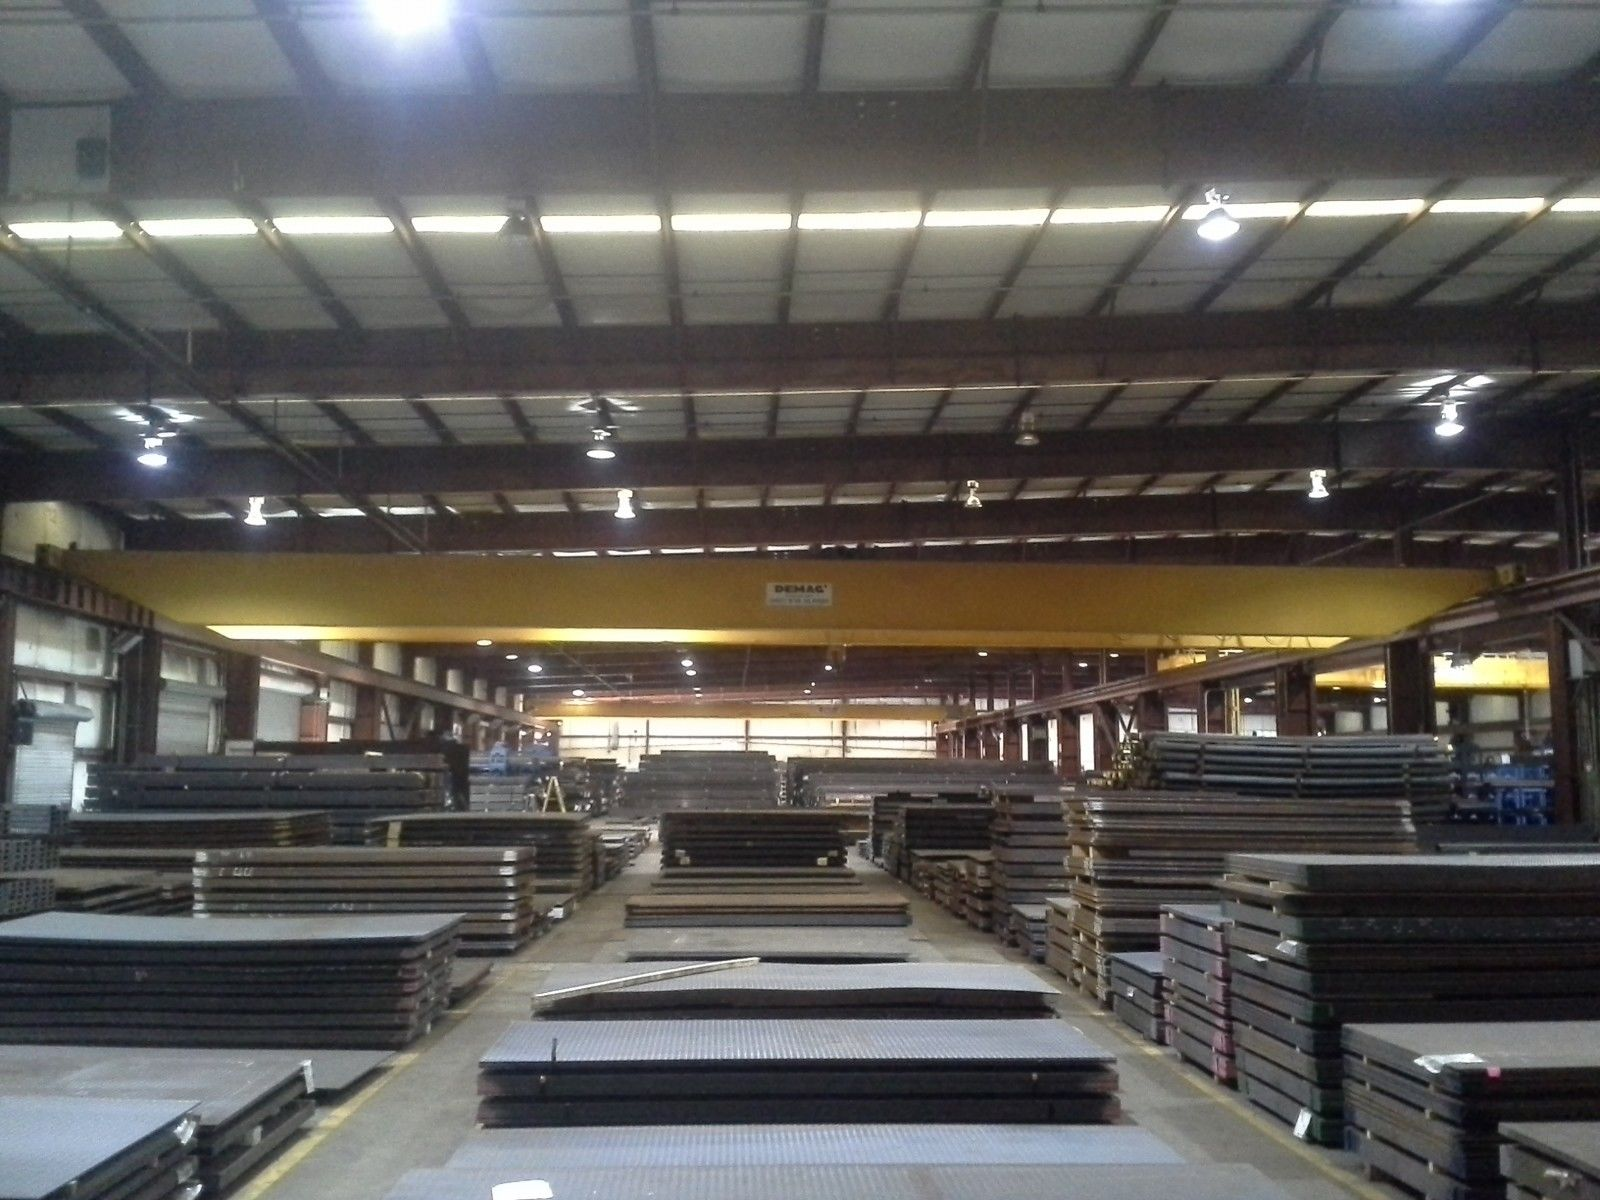 10 Ton Demag Overhead Bridge Crane For Sale Call 616 200